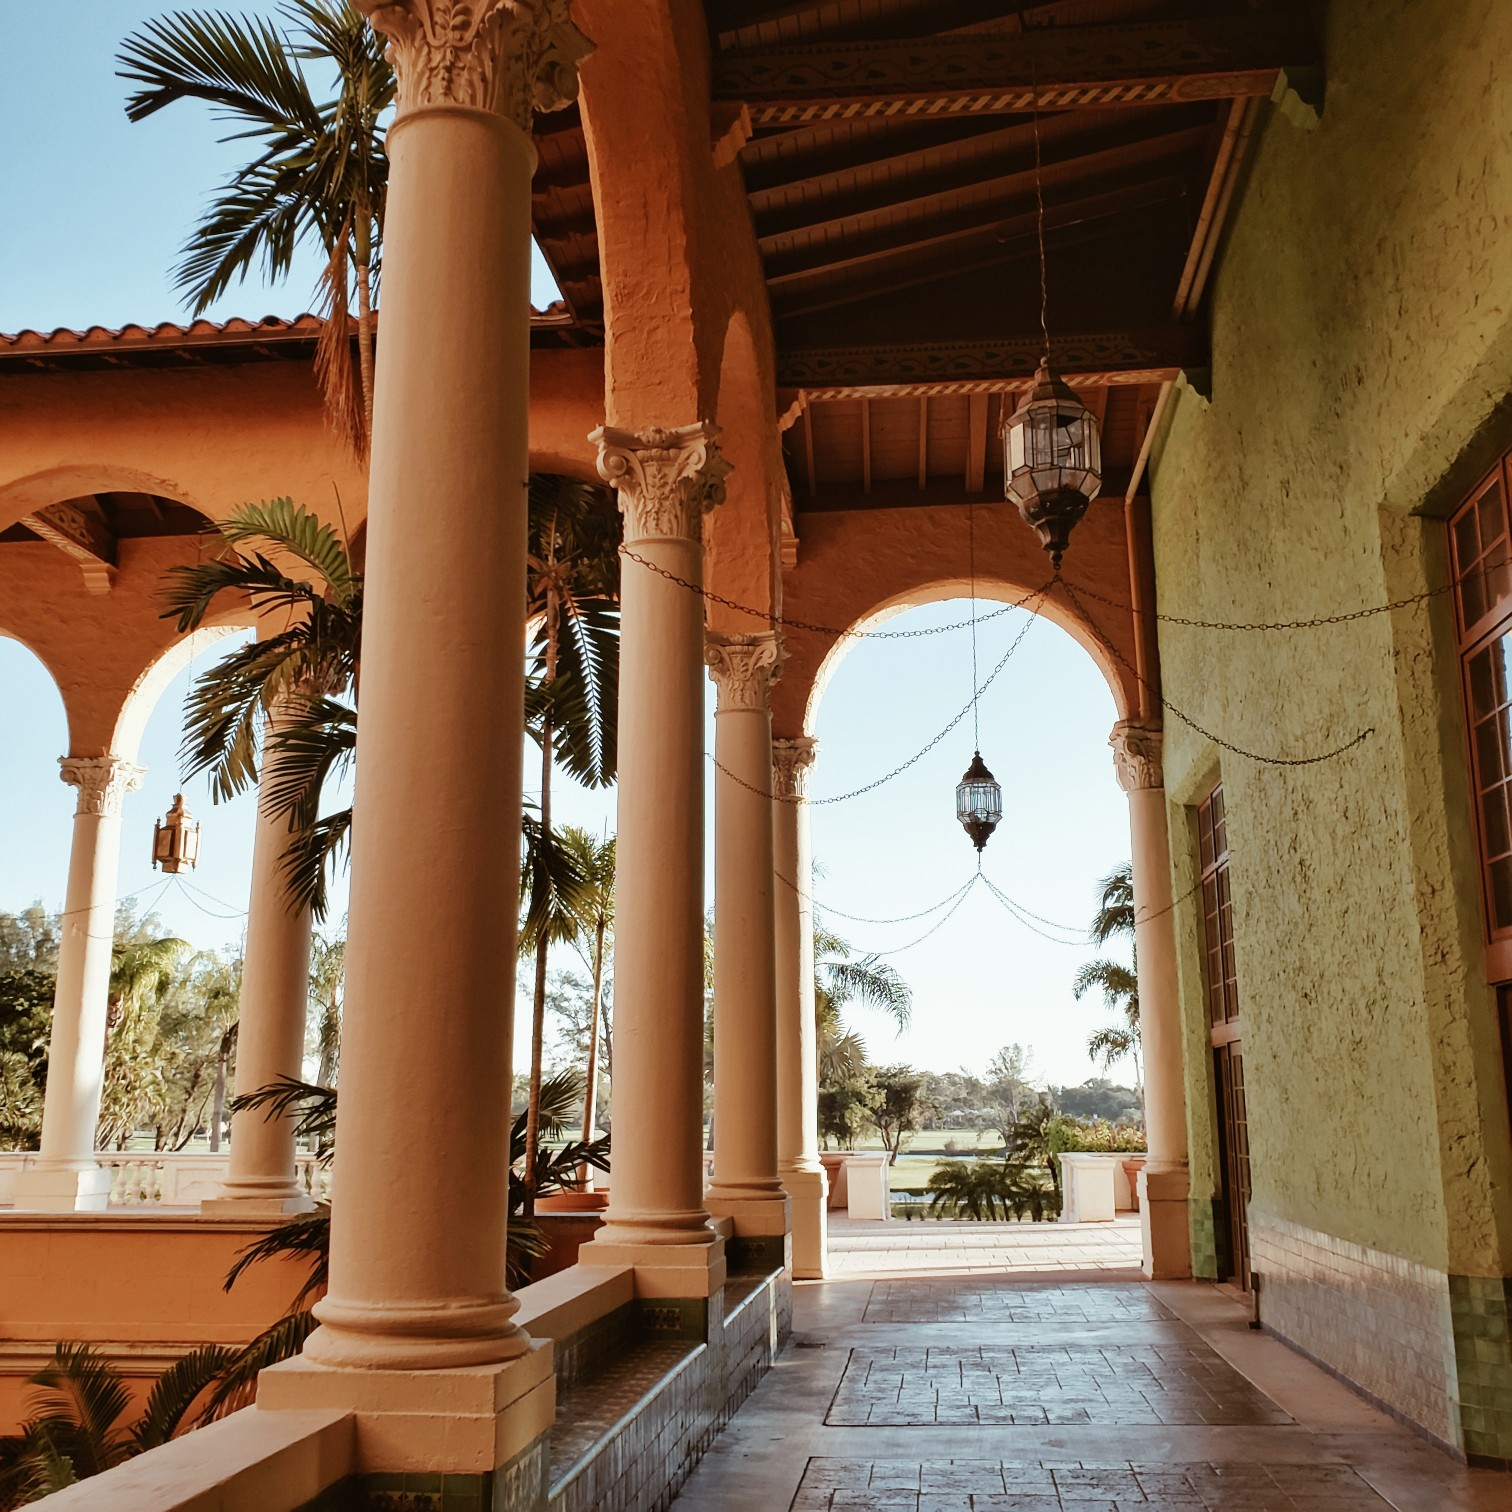 Miami's Best Instagrammable Spot at Biltmore Hotel Miami Coral Gables Famous Courtyard